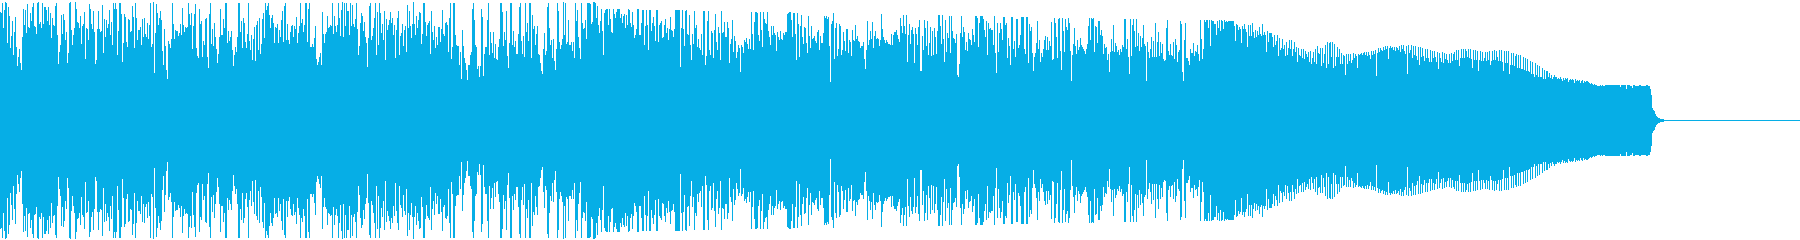 Country style guitar intro-06E's reproduced waveform